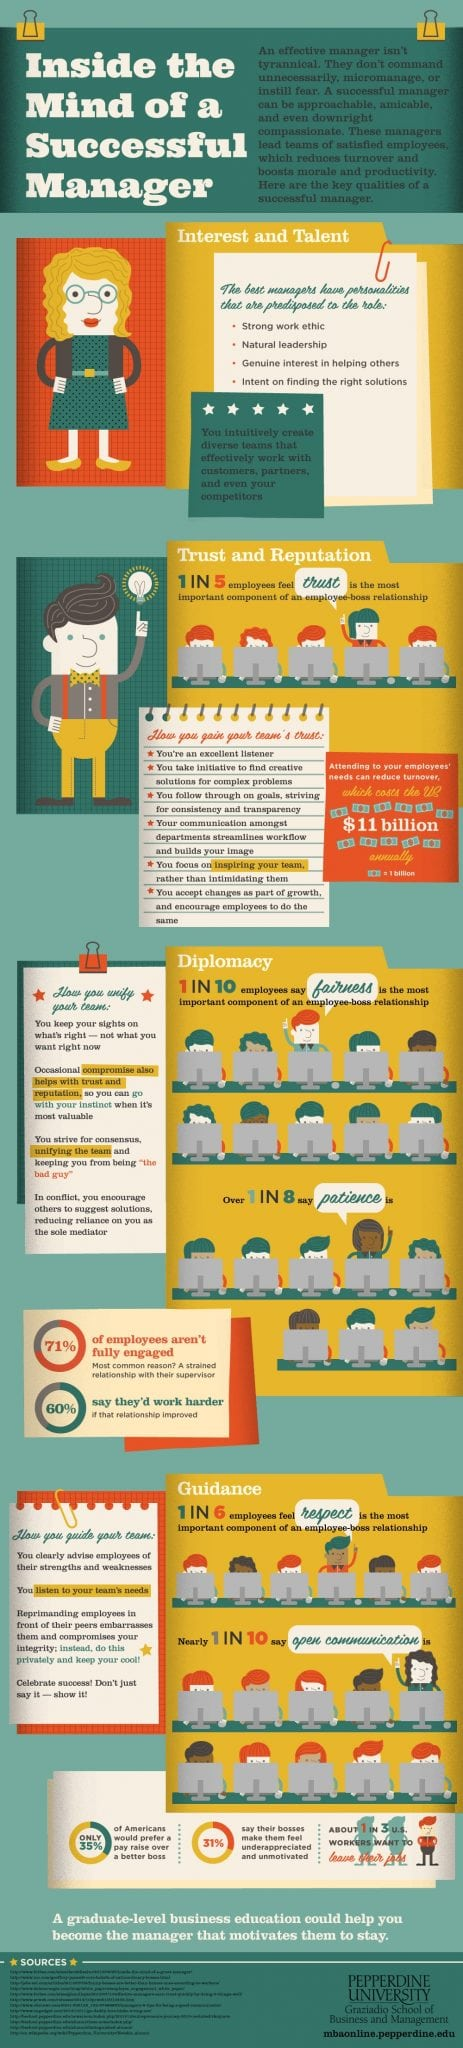 Photo of Inside the Mind of a Successful Manager [INFOGRAPHIC]